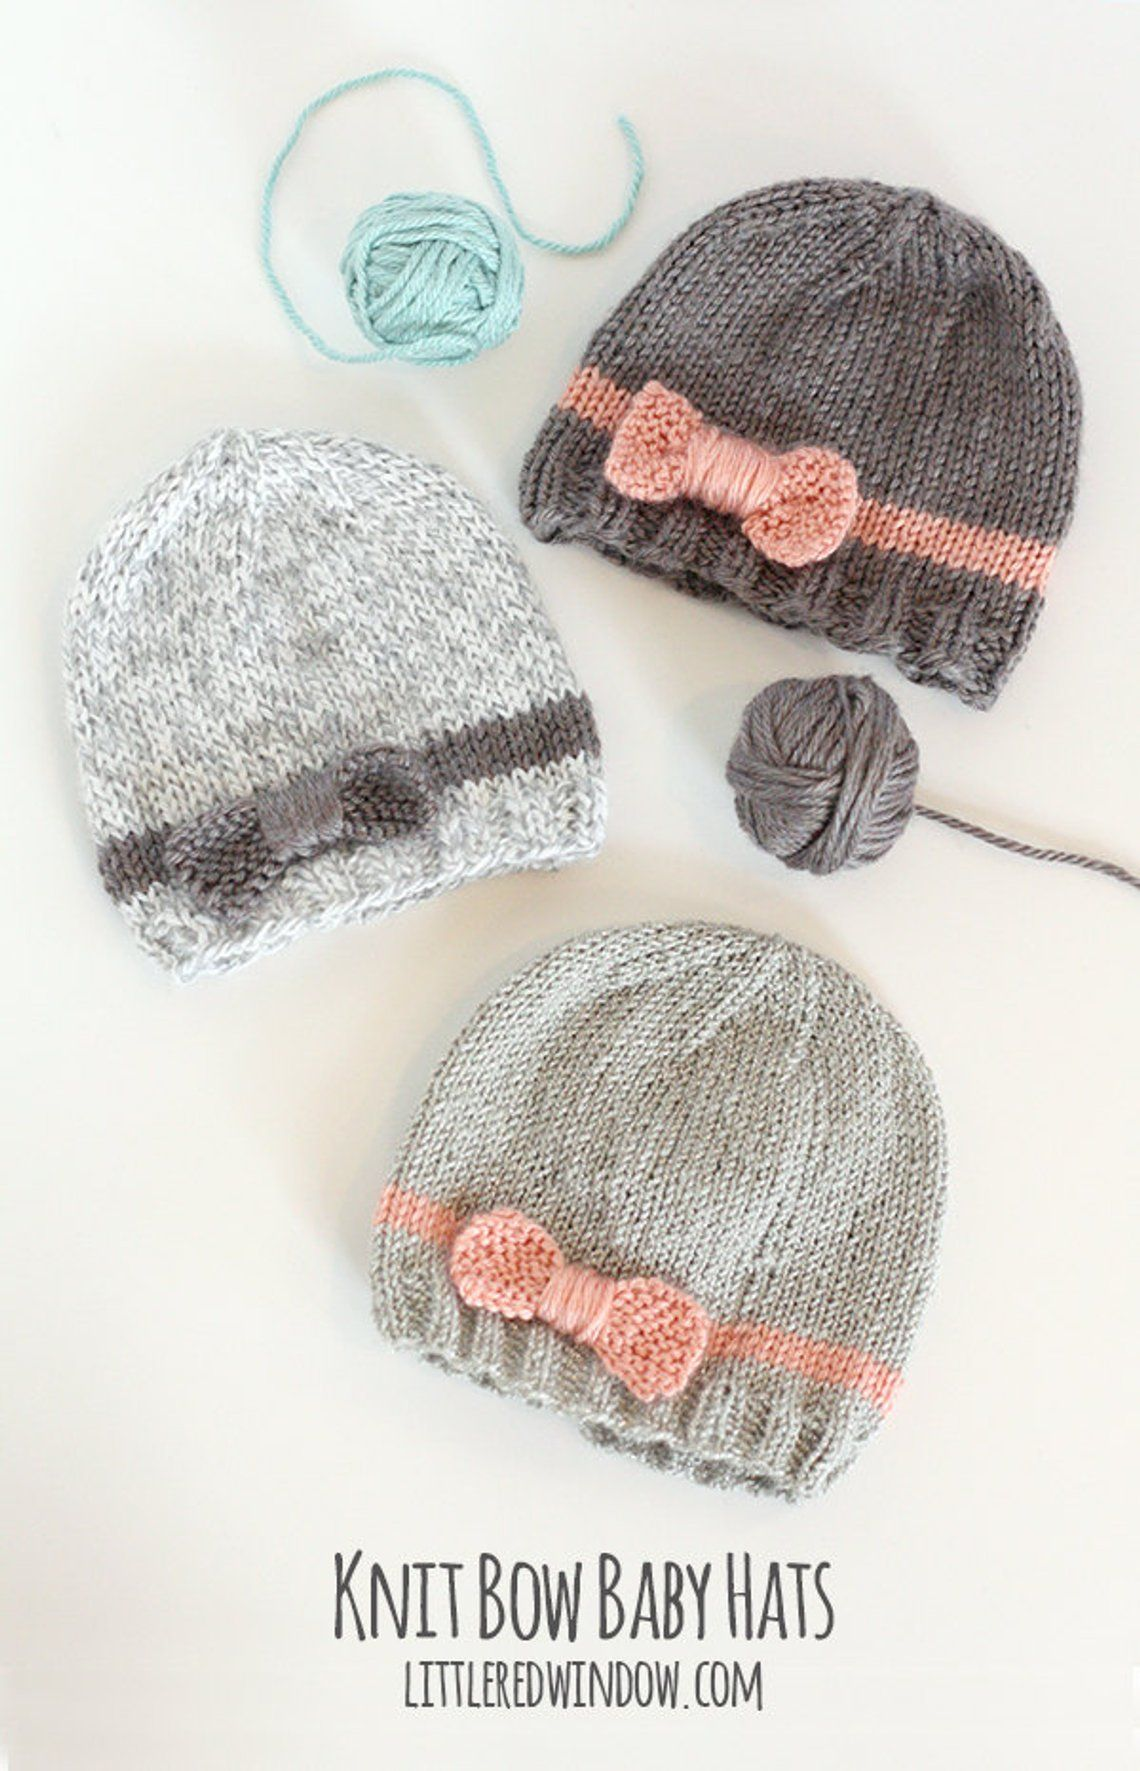 Knit Bow Baby Hat KNITTING PATTERN   Newborn baby bow hat    adf8d500afb